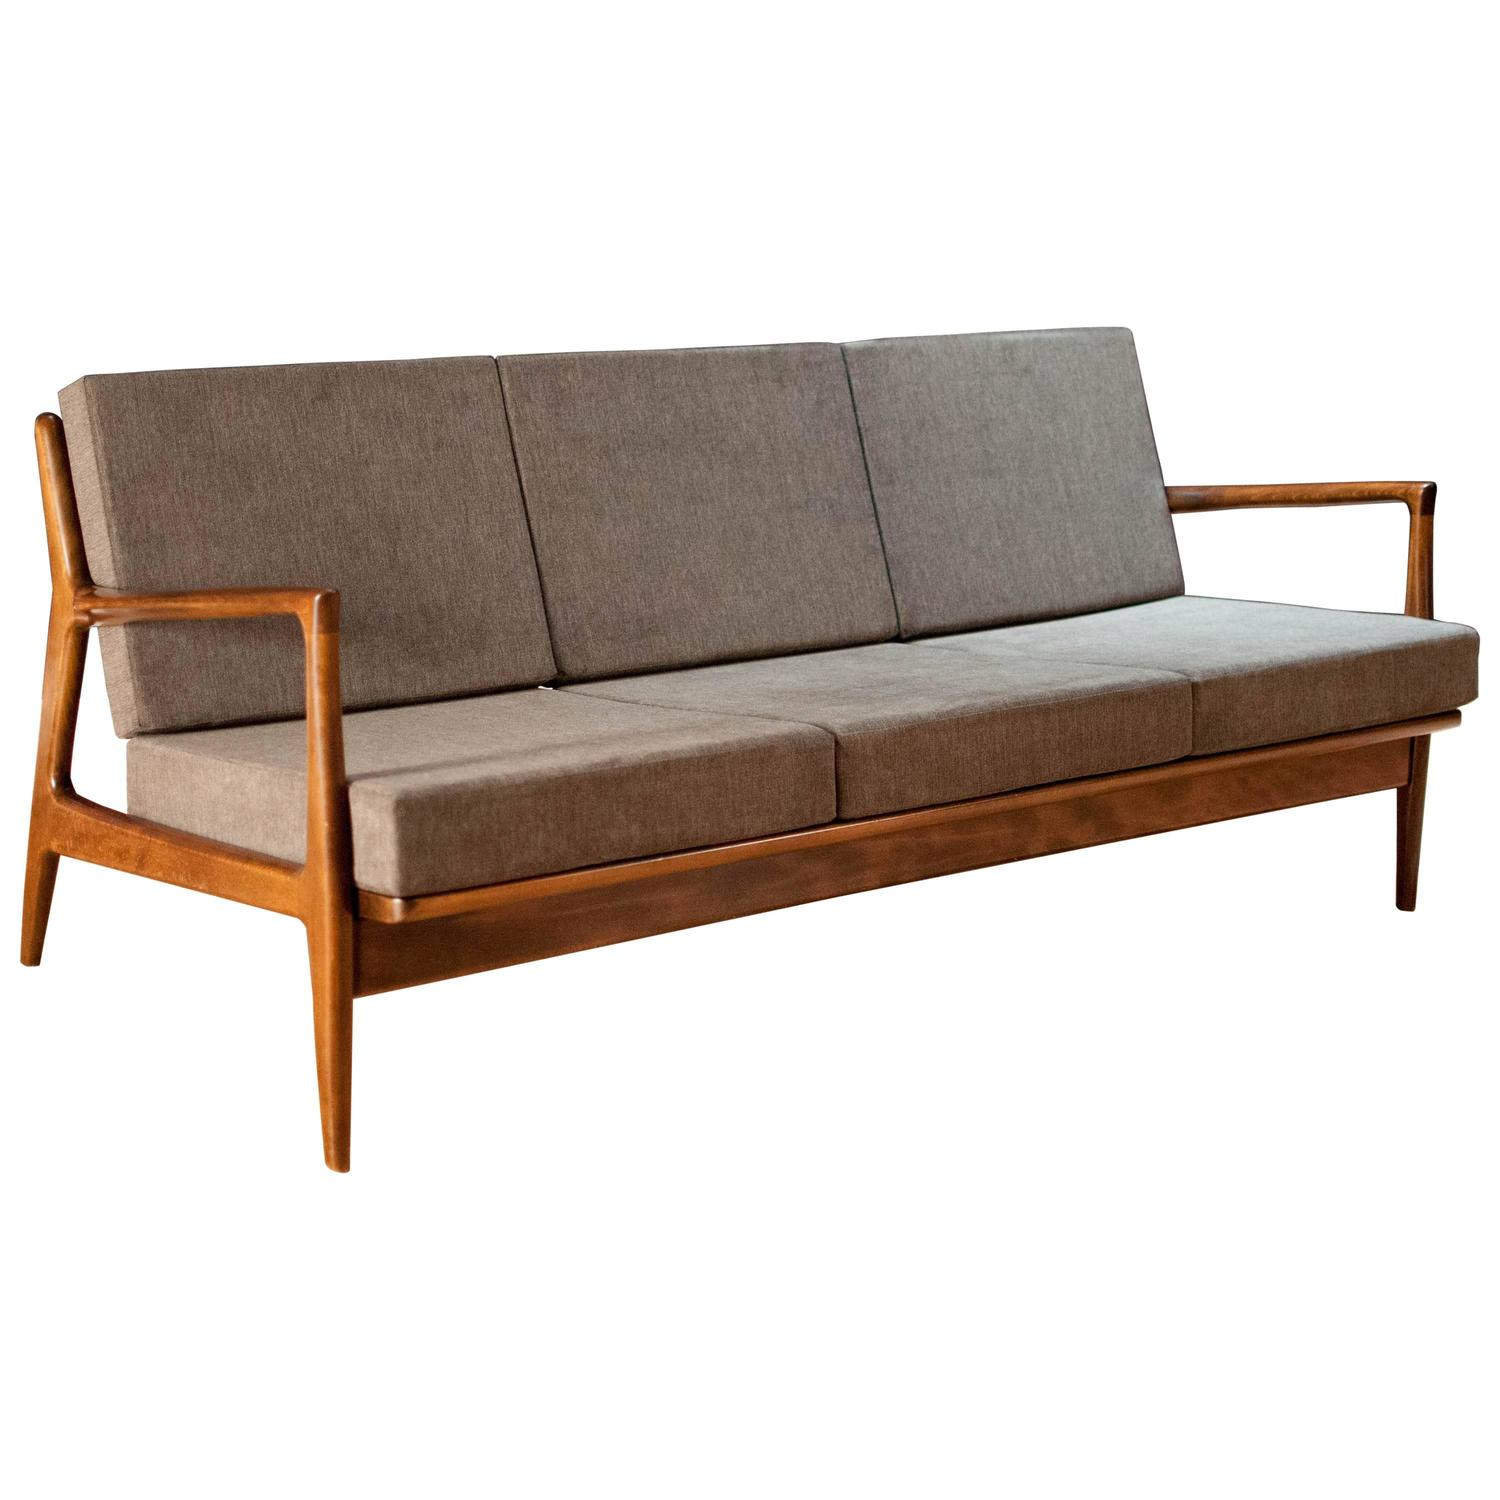 Danish Ib Kofod Larsen Sofa By Selig At 1stdibs